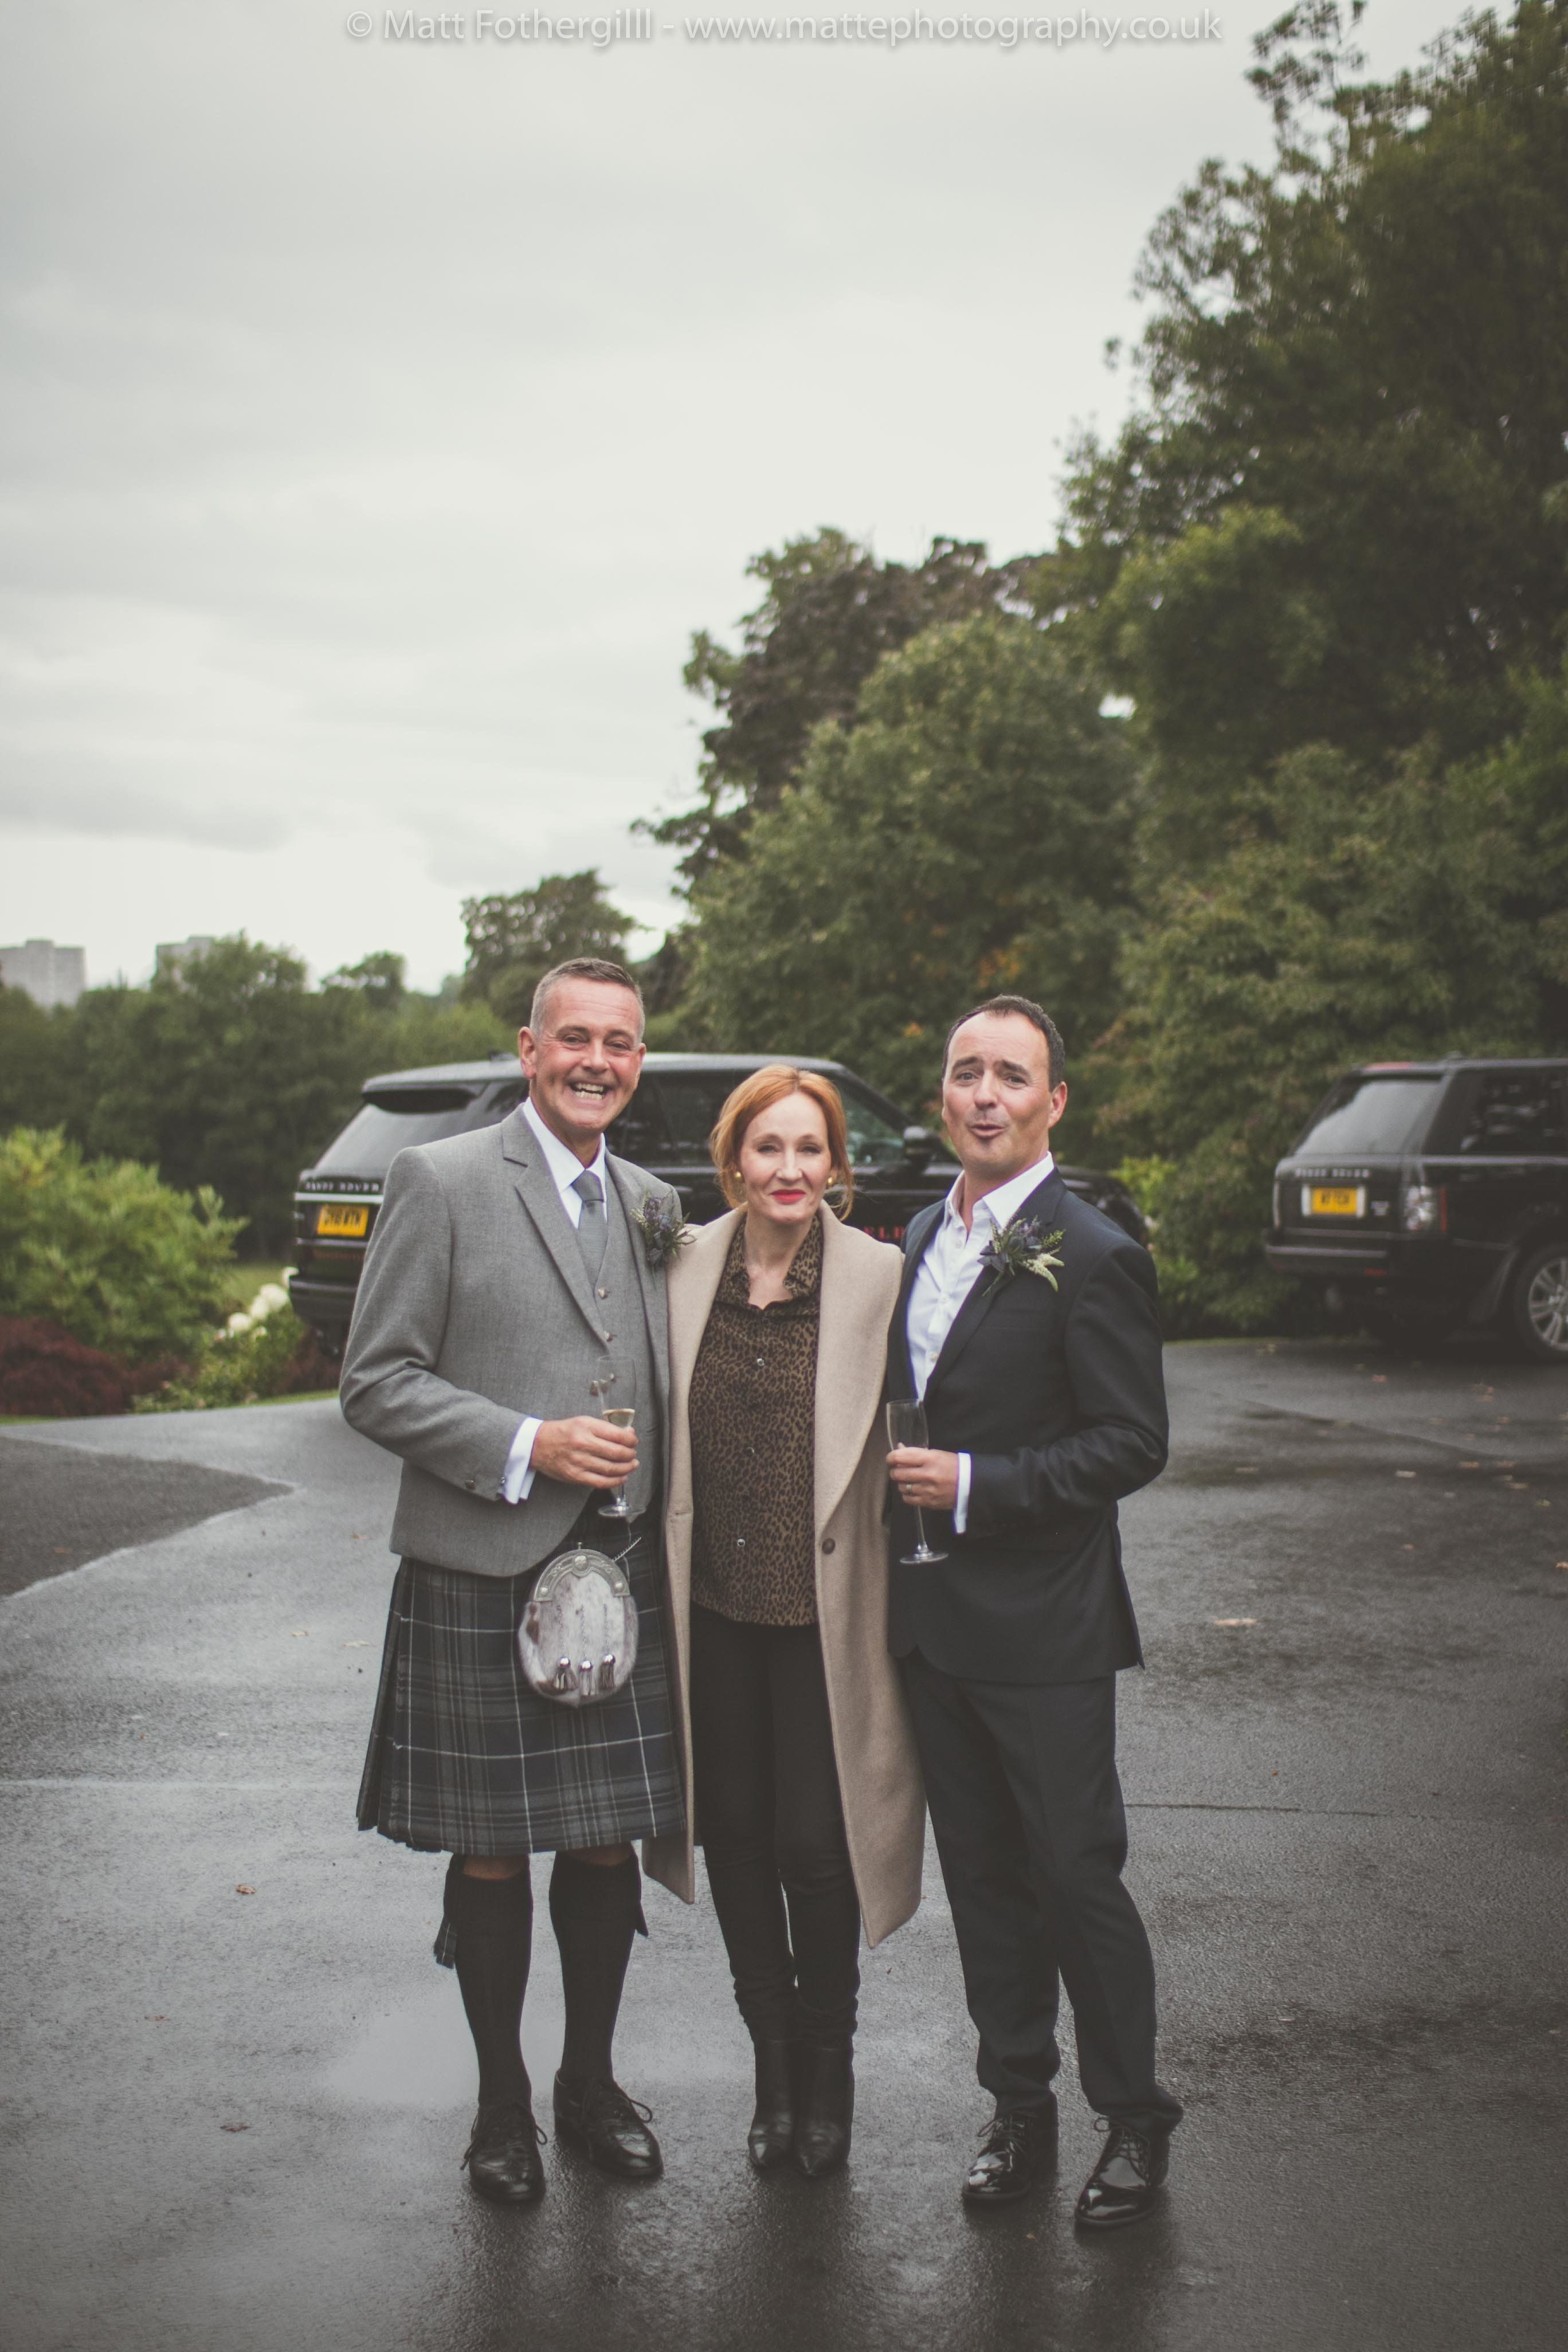 <i>Harry Potter</i> author J.K. Rowling surprised two Scottish newlyweds by posing with them on their wedding day. &nbsp